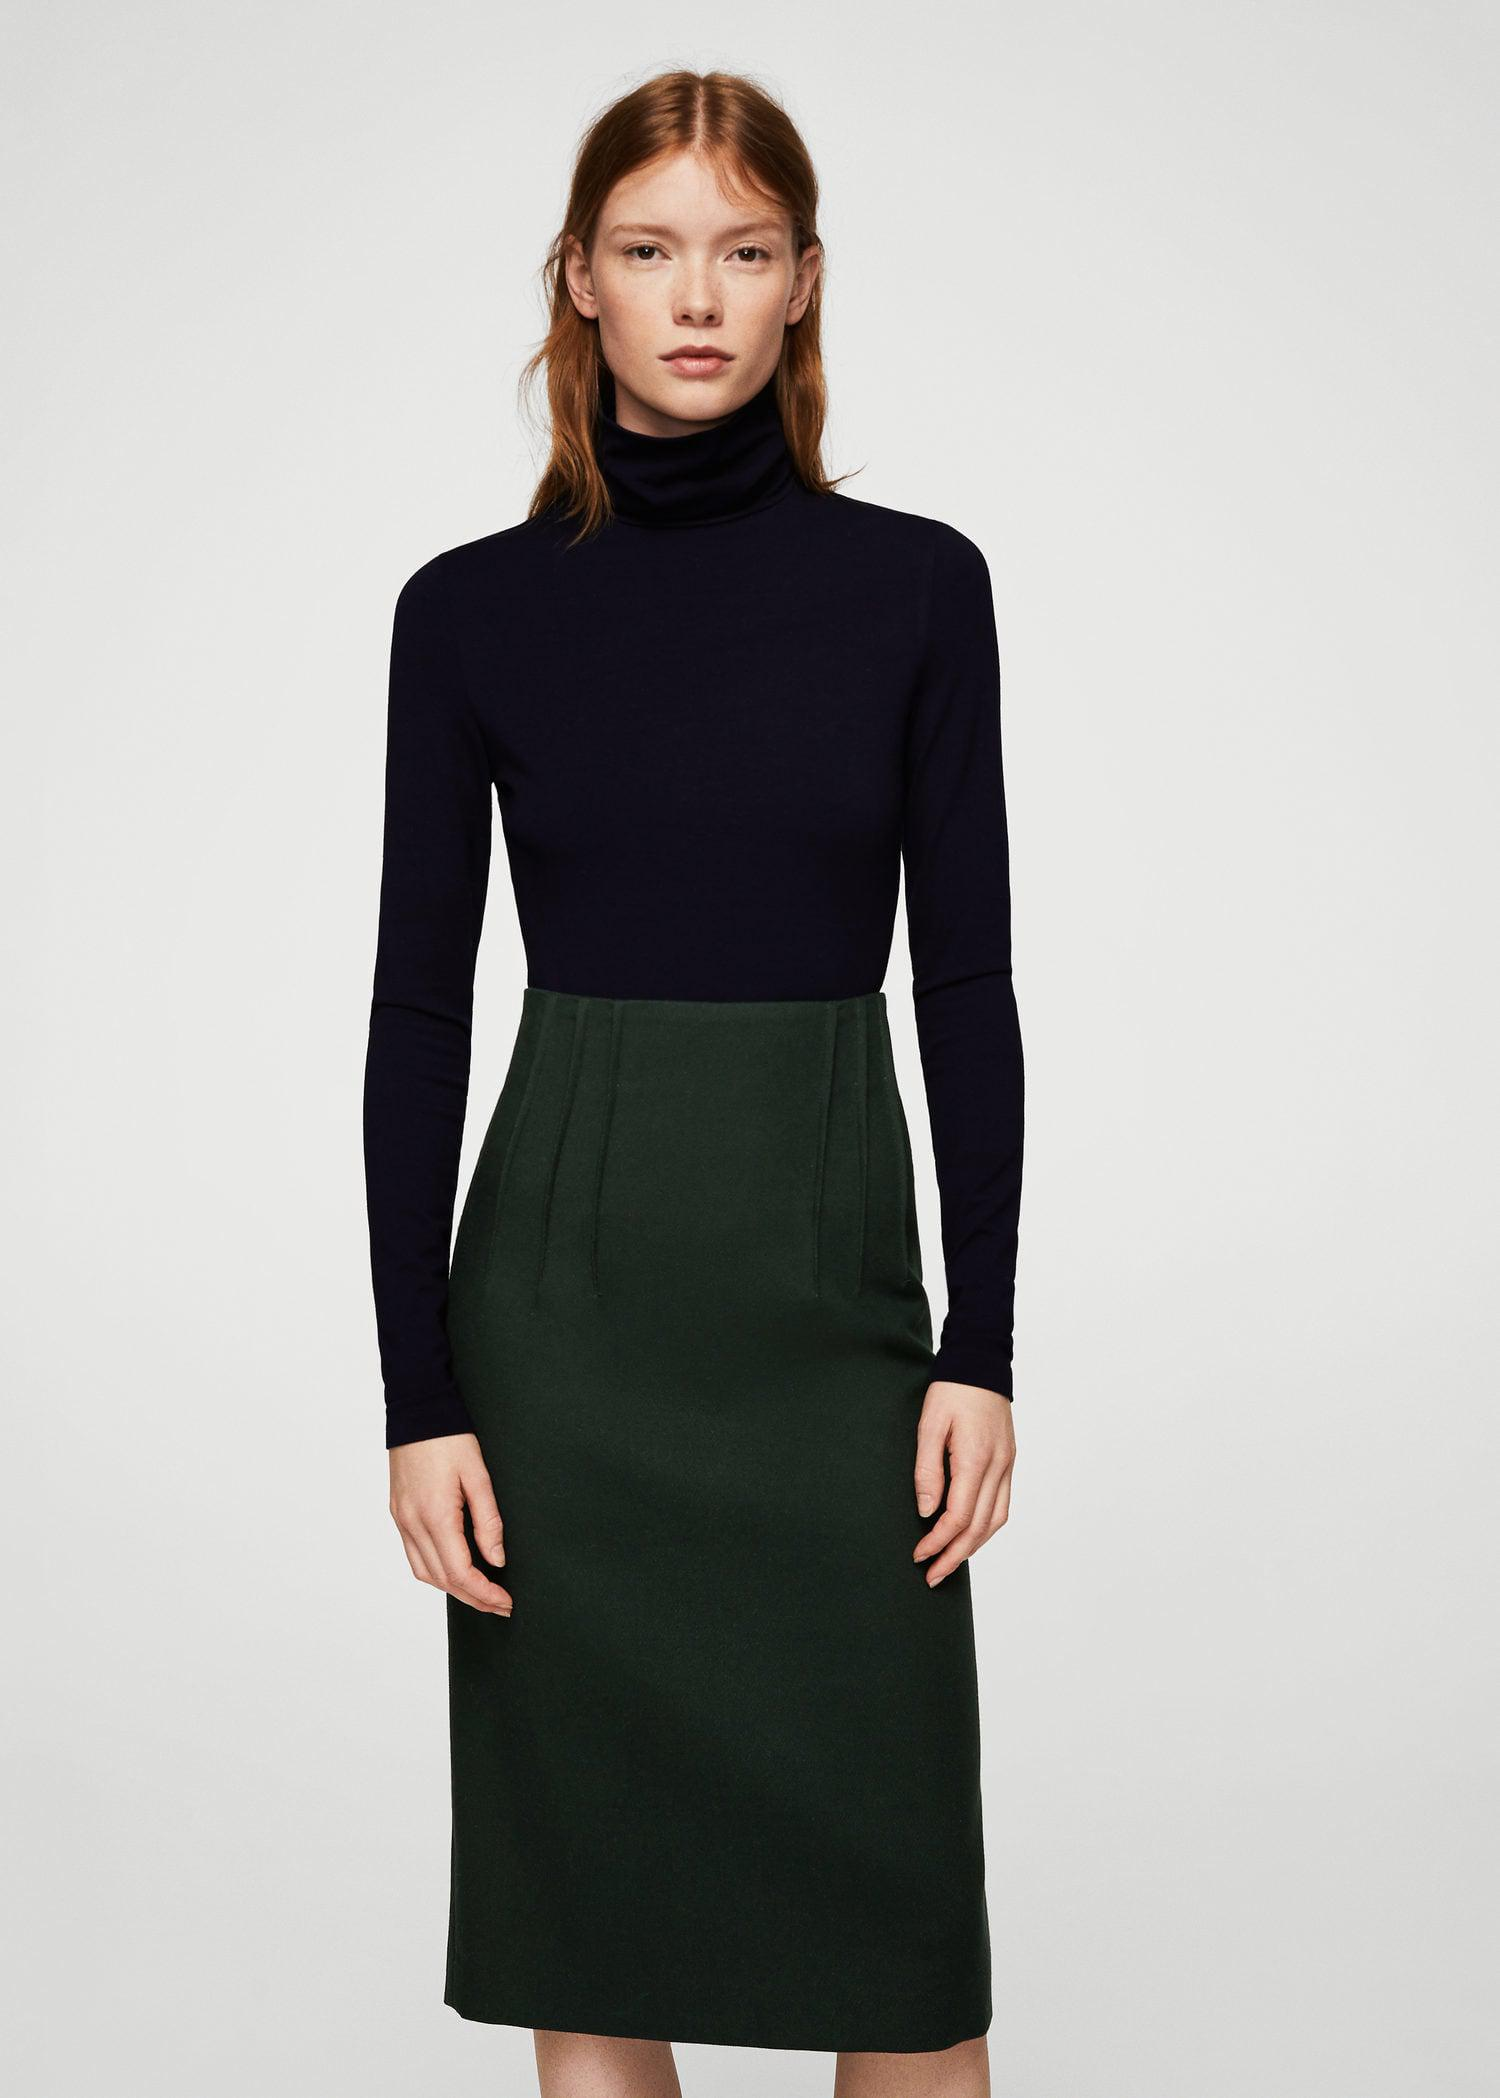 e59d27ca8 Green Pleated Midi Skirt Outfit